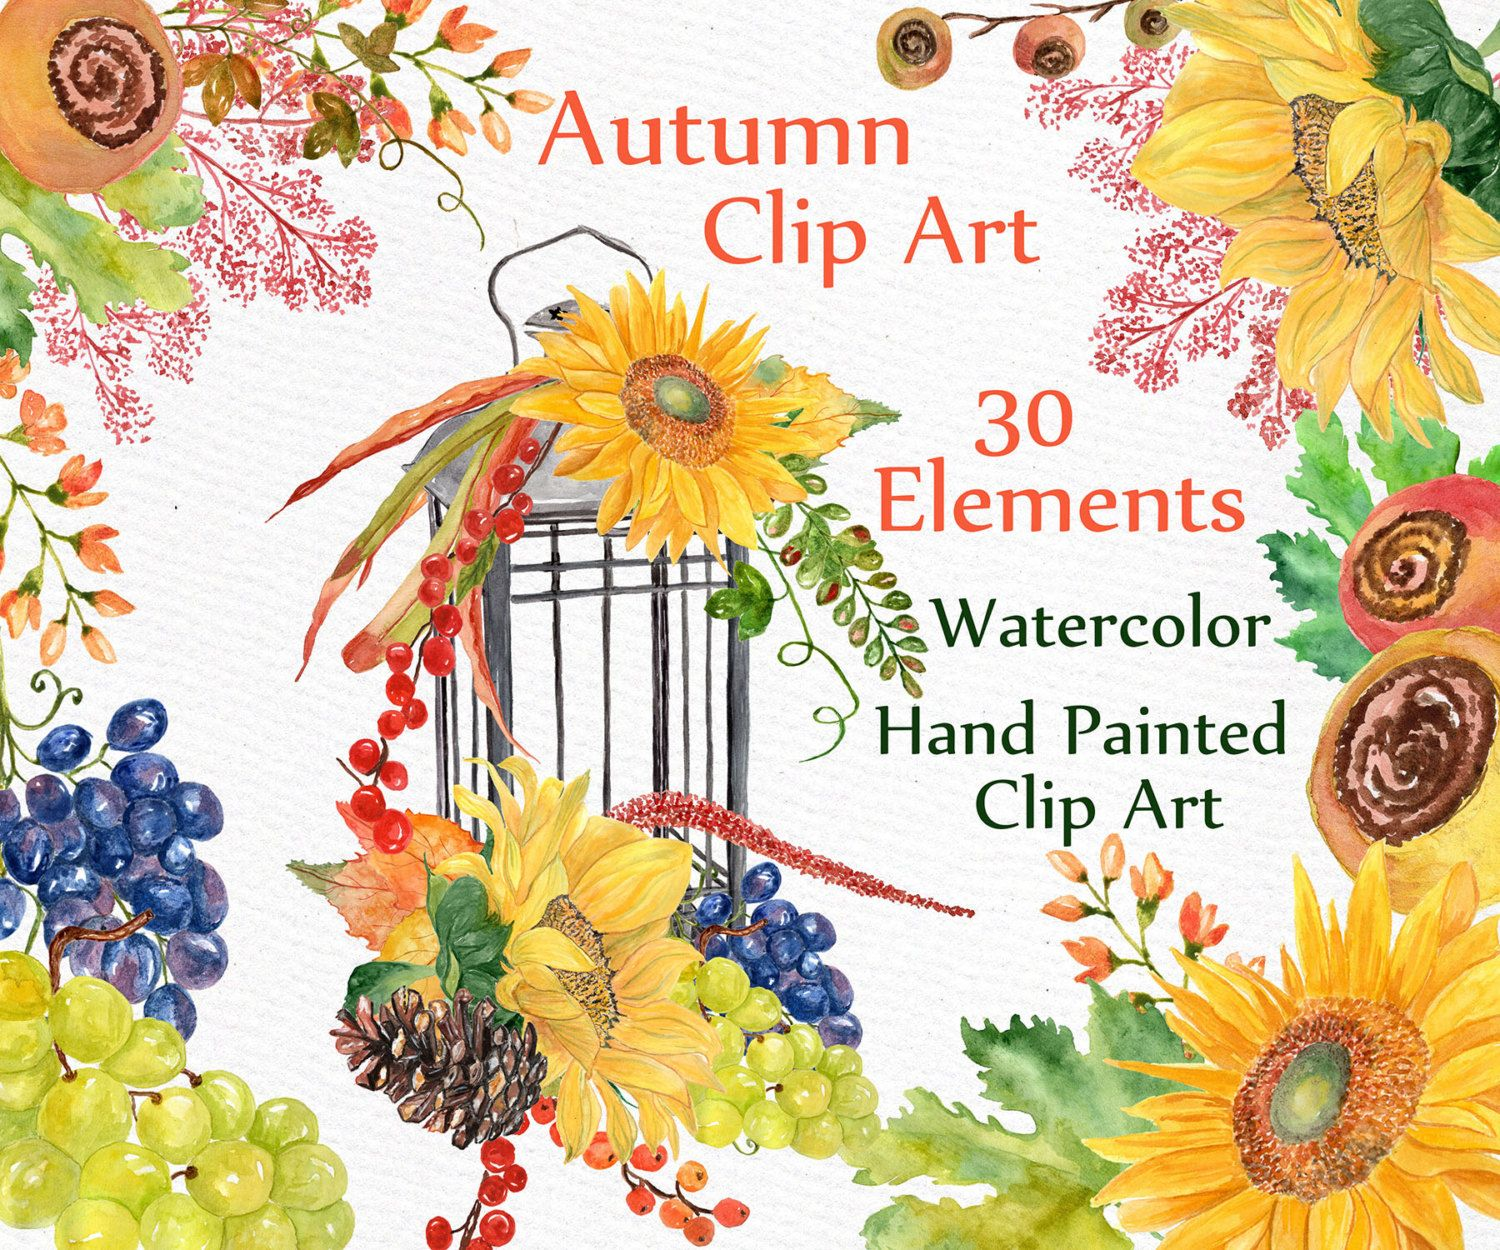 Autumn Watercolor Clipart FALL CLIPART Sunflower Grape Harvest Leaves Hand Painted